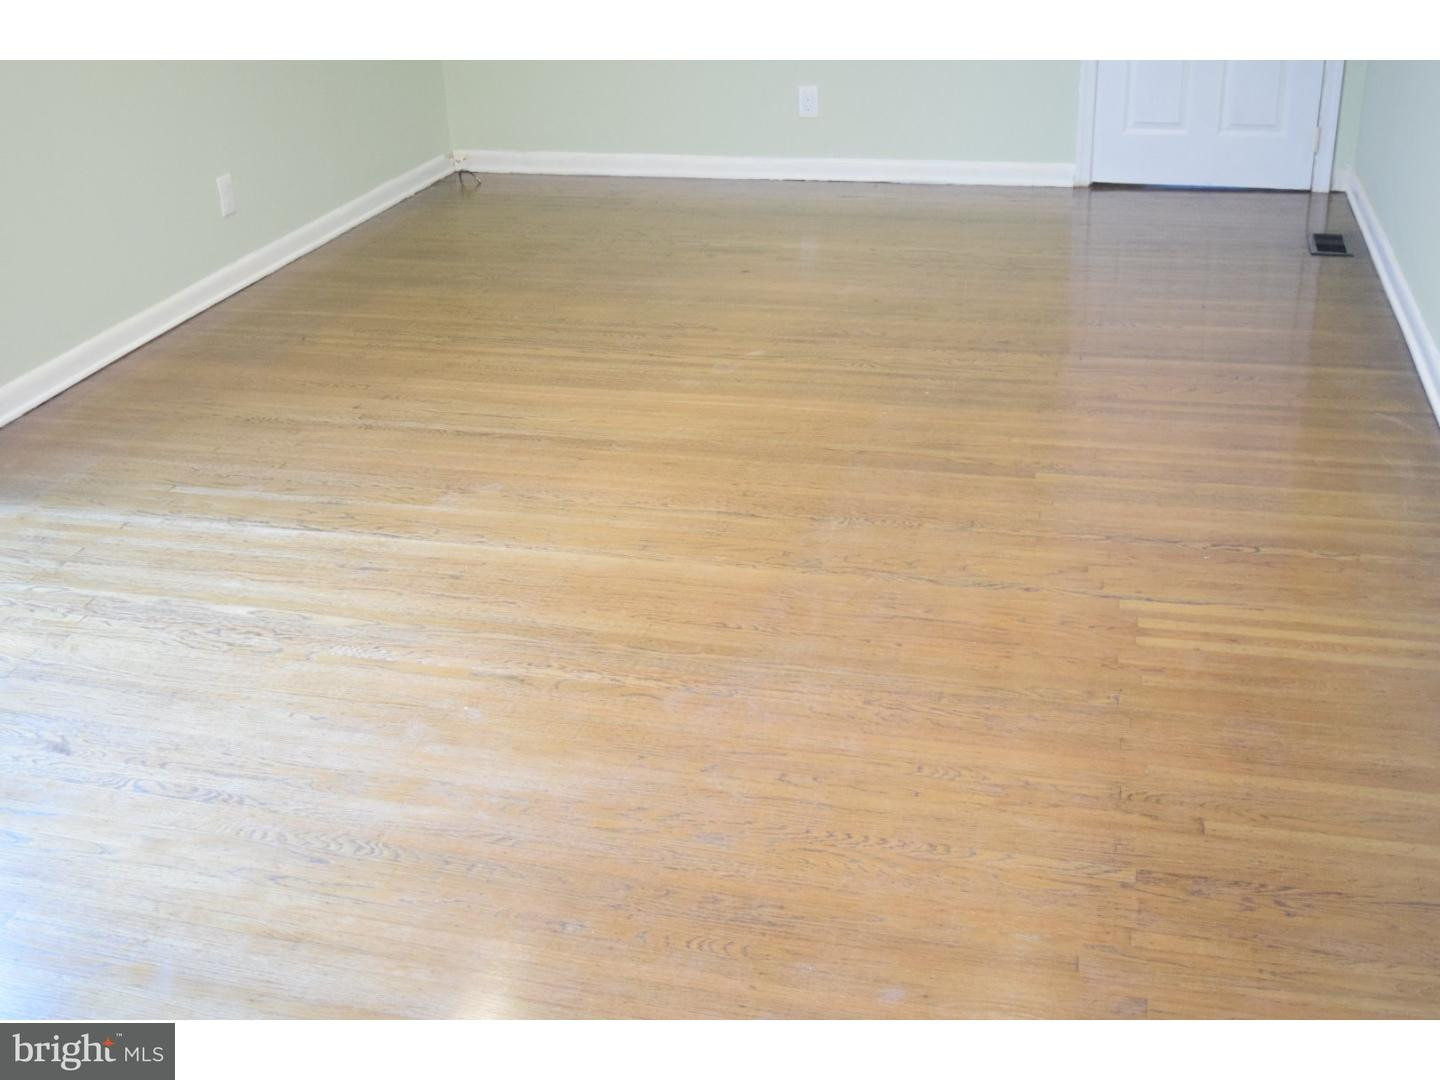 hardwood floor refinishing cherry hill nj of 153 canterbury road mount laurel 08054 sold listing mls throughout 153 canterbury road mount laurel nj 08054